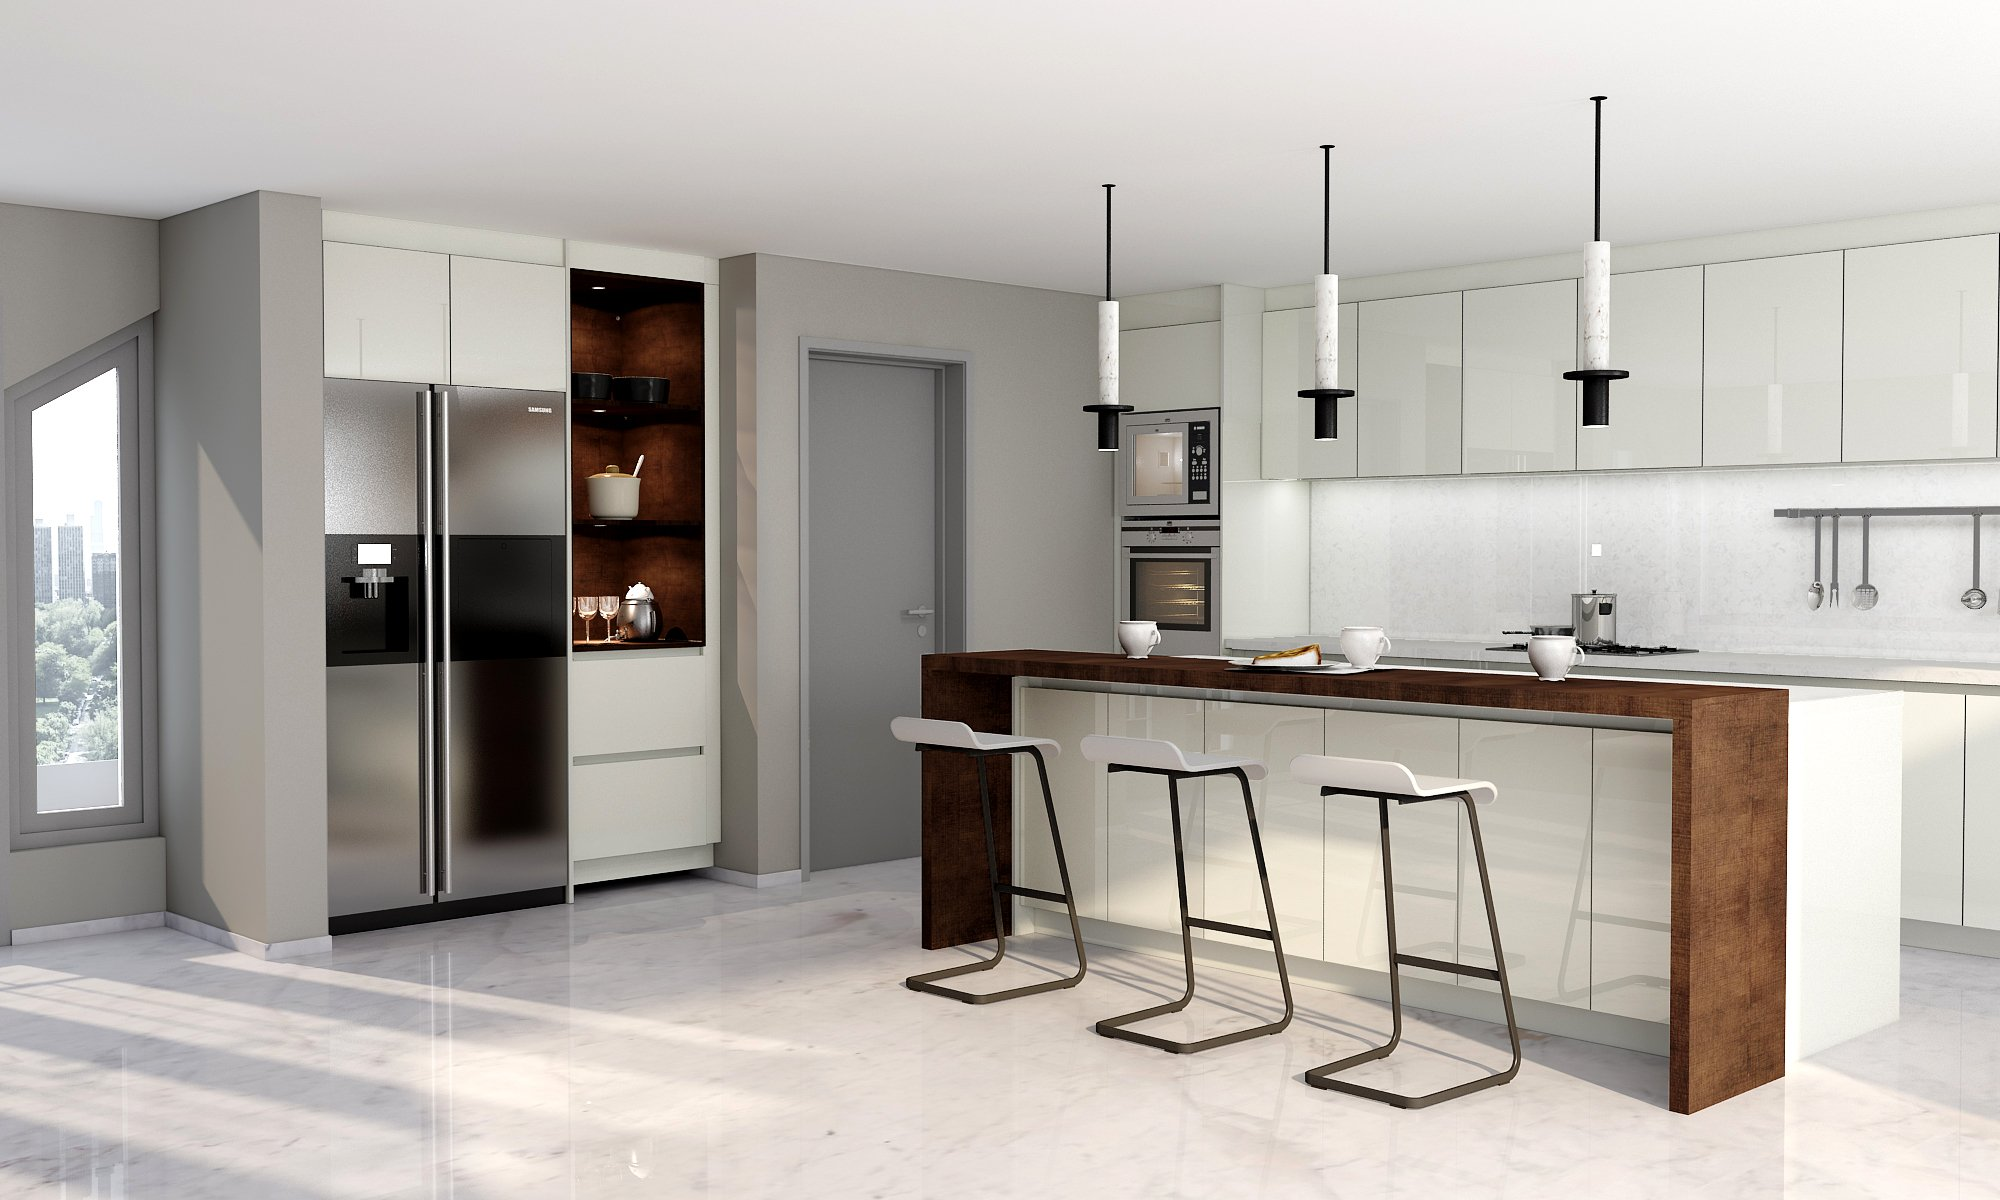 Handlless Kitchen in Lights Grey Gloss With Island and Breakfast Bar